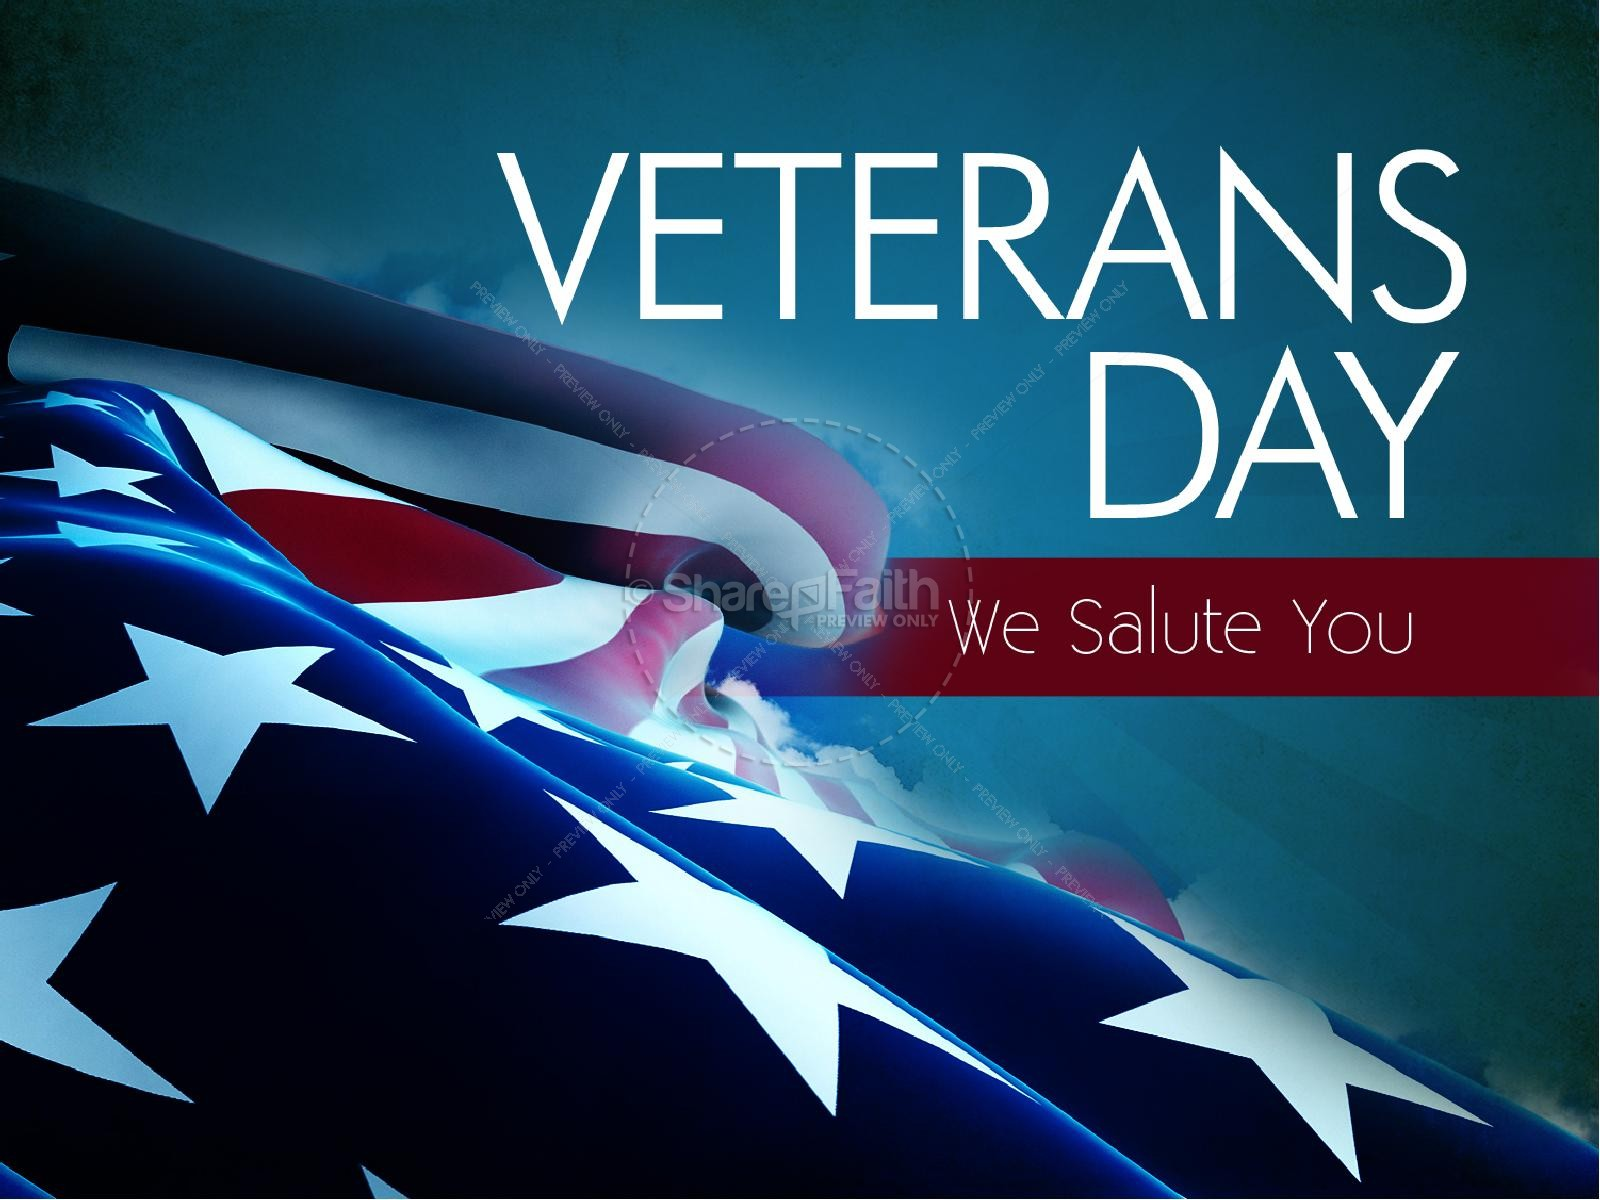 Veterans day powerpoint slideshow powerpoint sermons veterans day powerpoint slideshow toneelgroepblik Choice Image